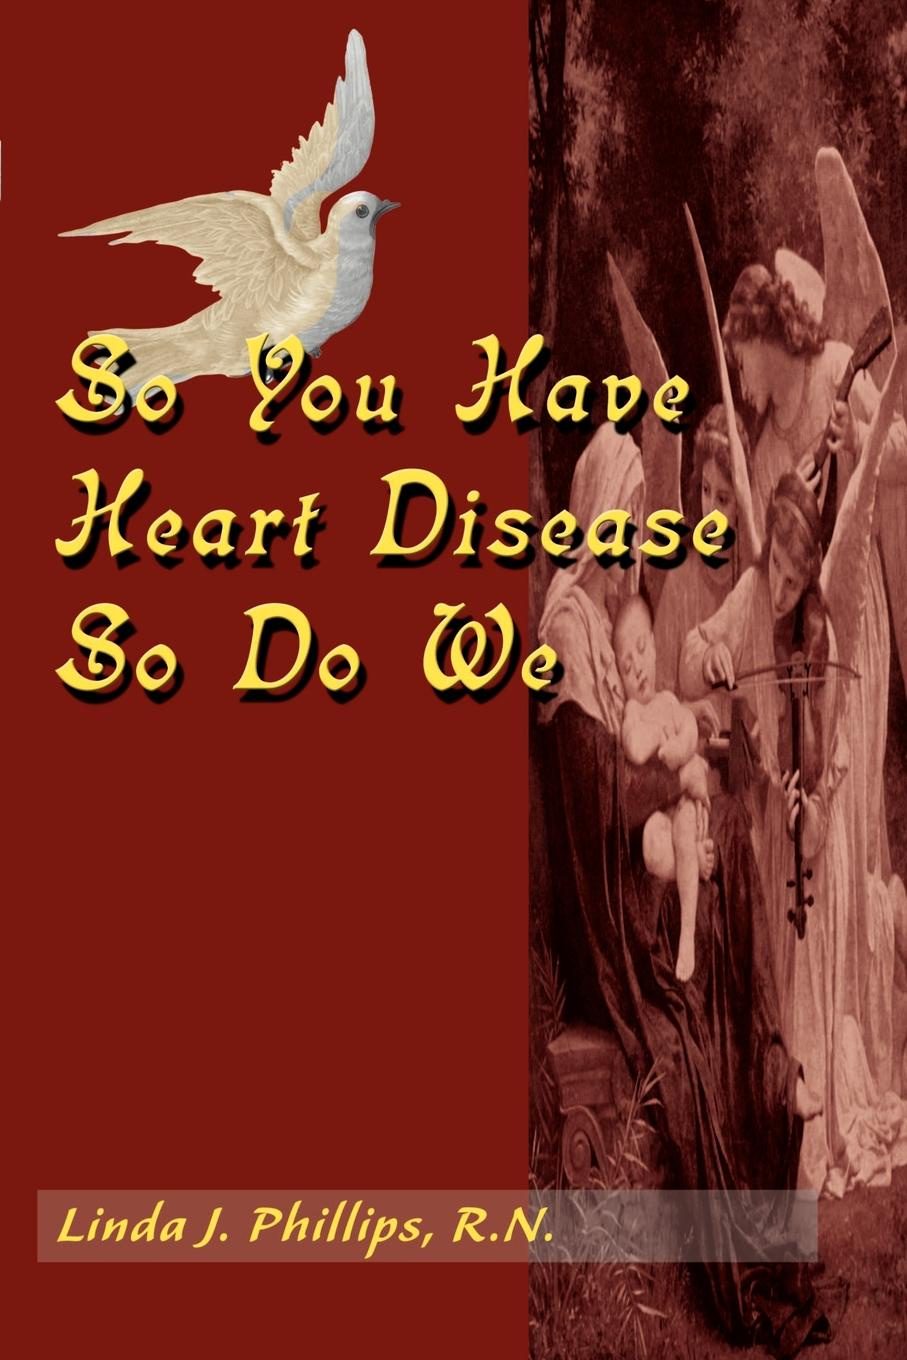 So You Have Heart Disease So Do We. Linda J. Phillips